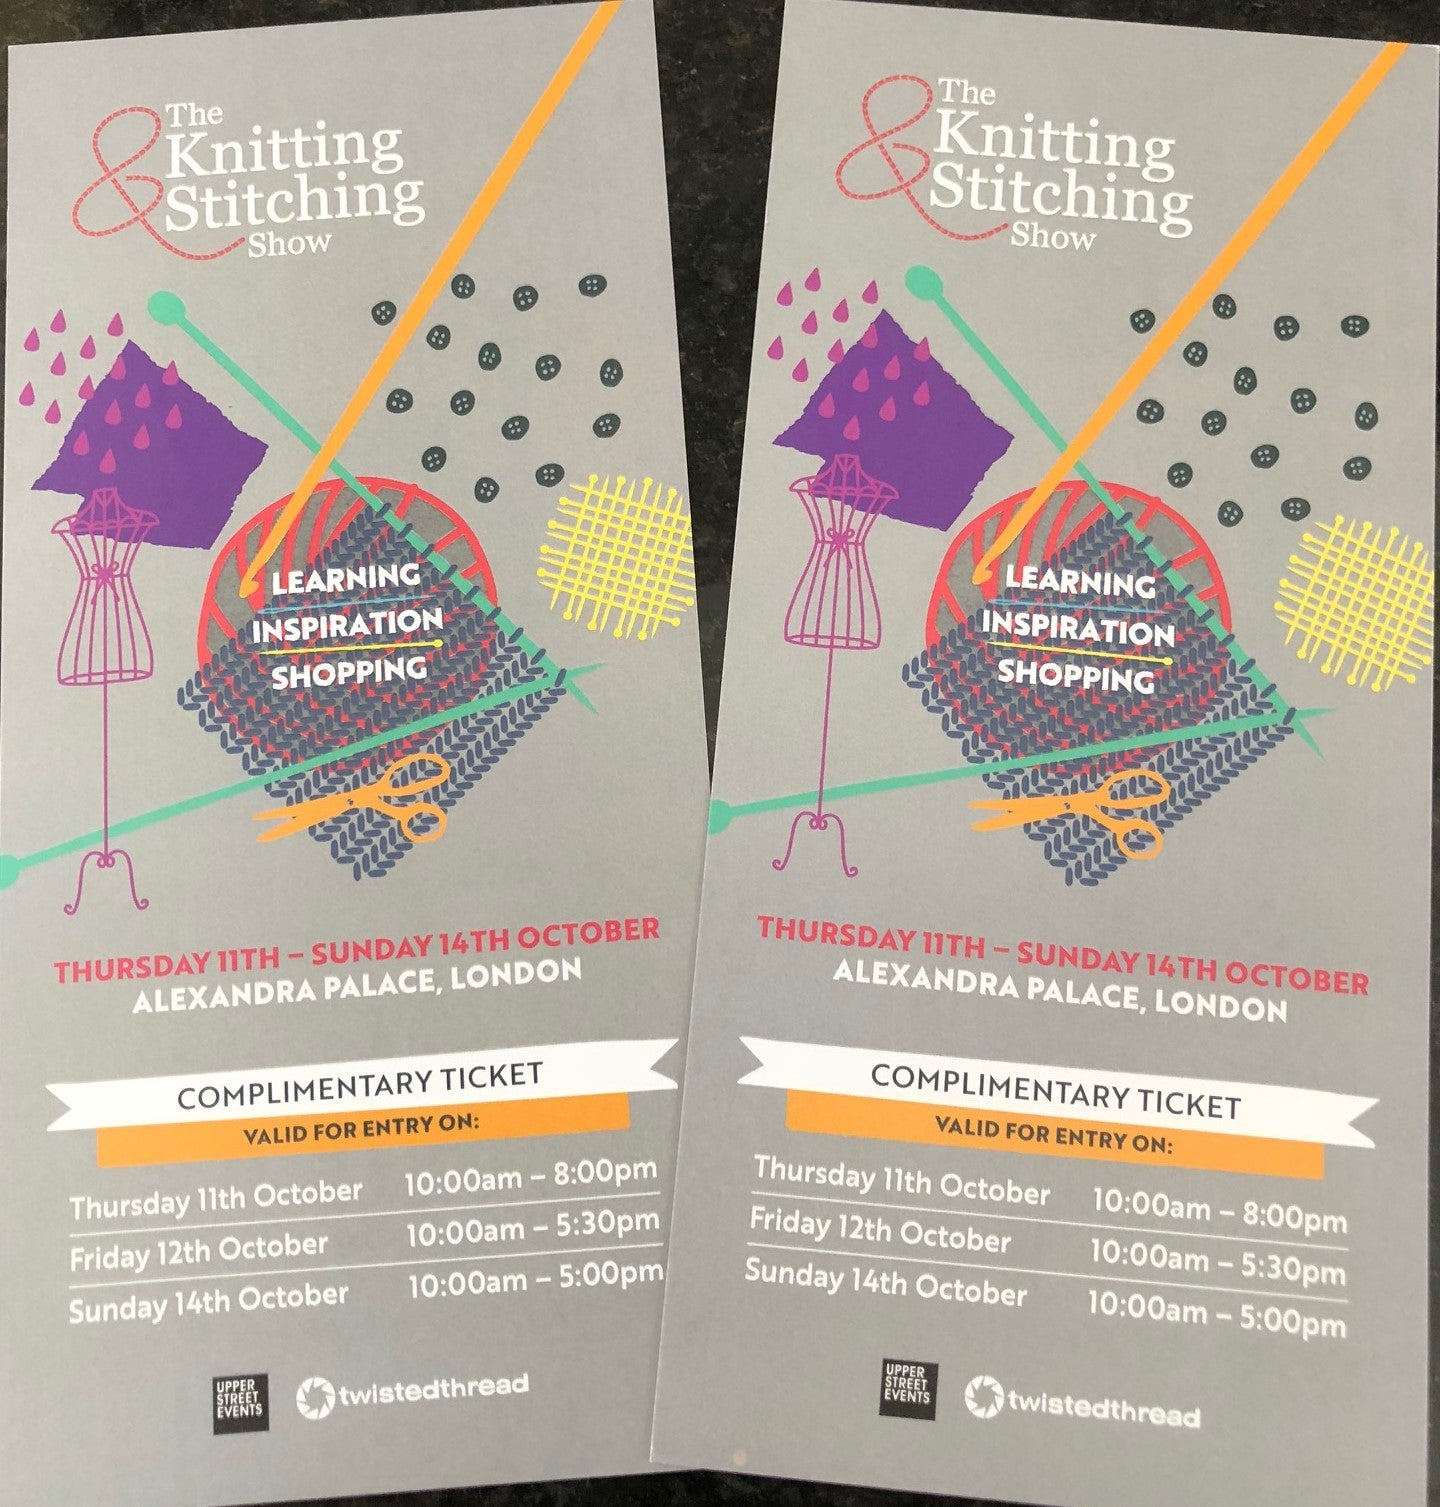 2 Tickets for Knitting & Stitching, Ally Pally - GIVE-AWAY